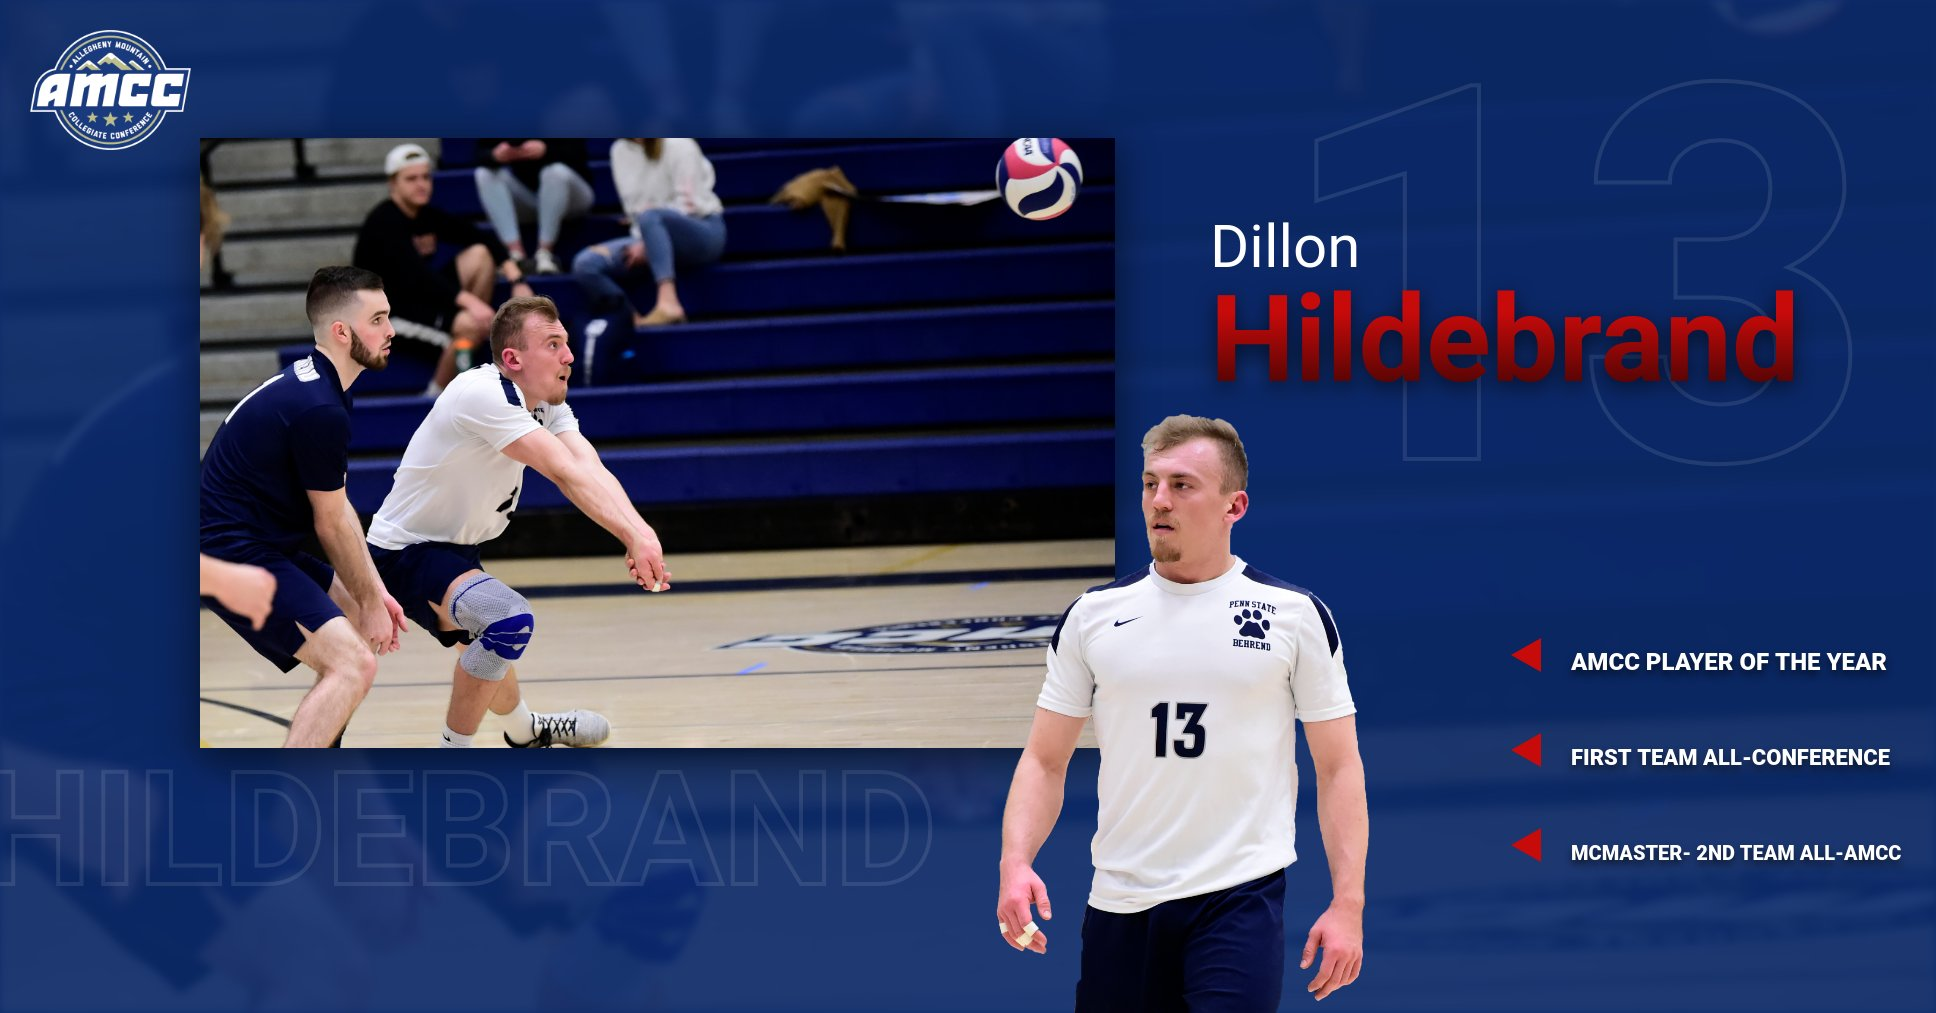 Hildebrand Named AMCC Player of the Year; McMaster Earns All-AMCC Honors